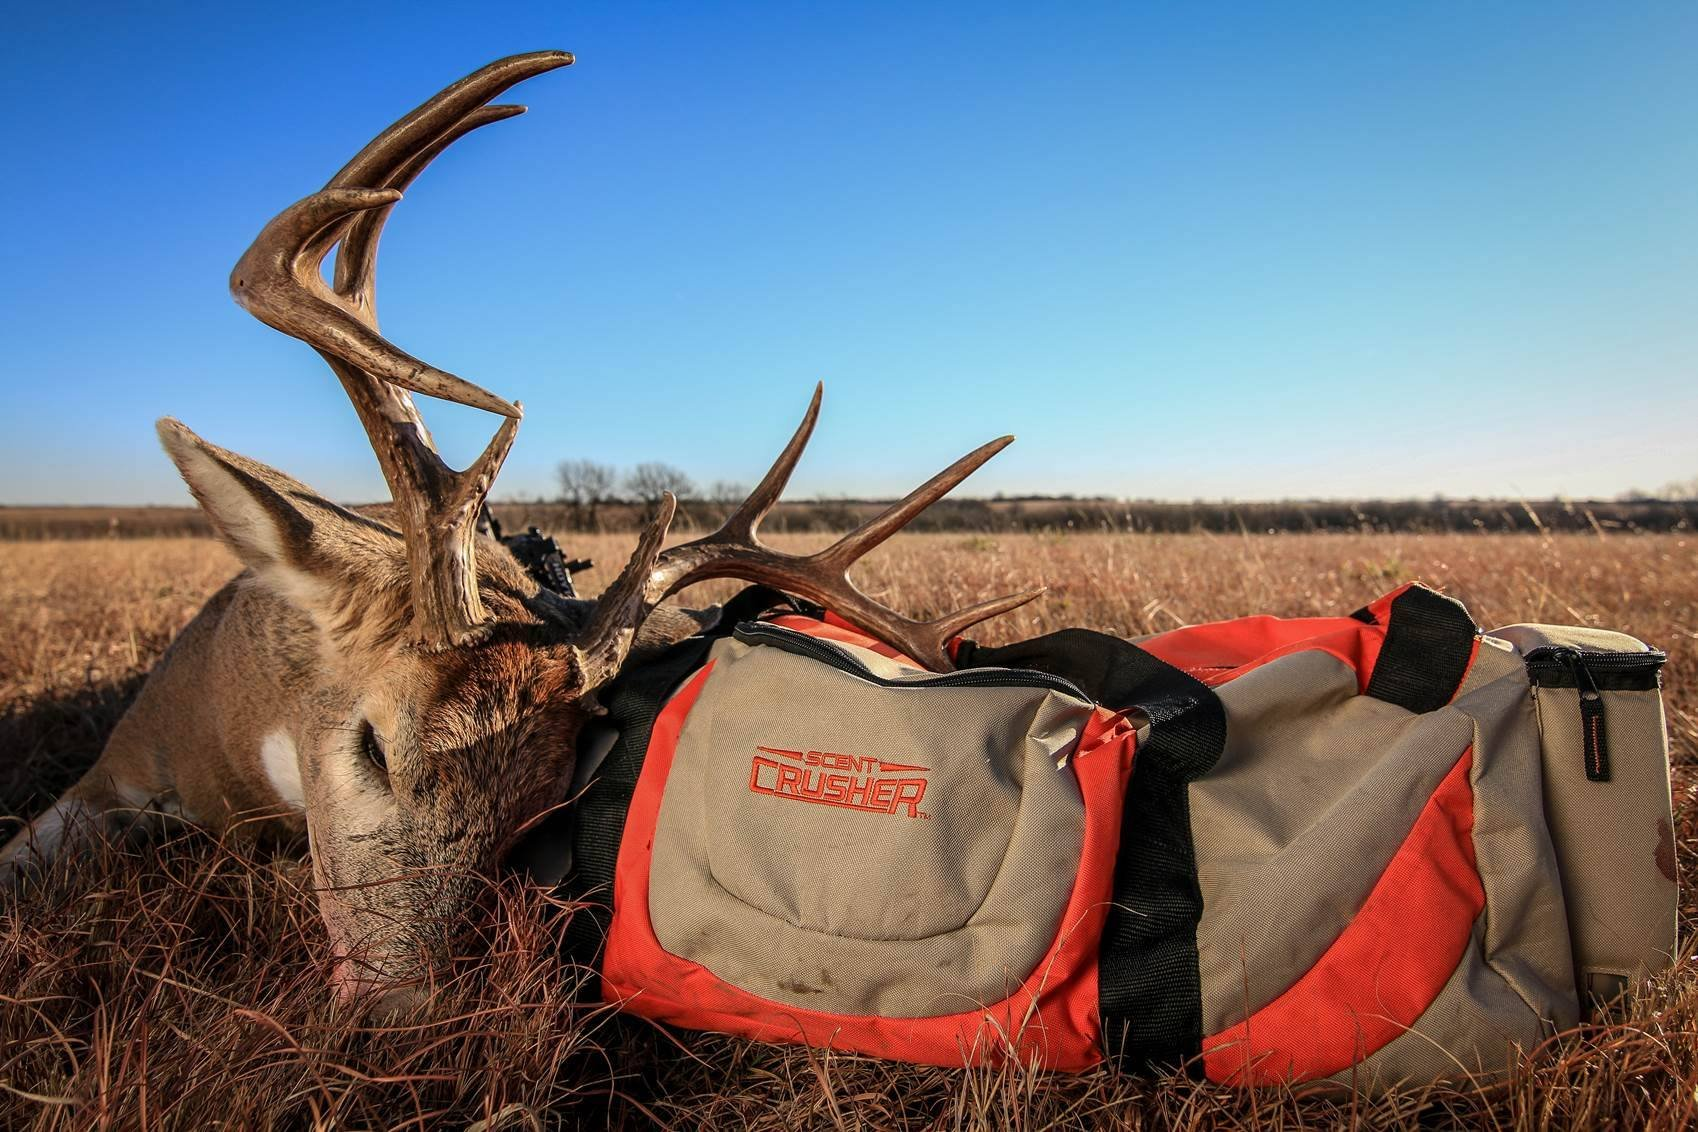 Scent Crusher Ozone Gear Bag by Scent Crusher (Image #8)